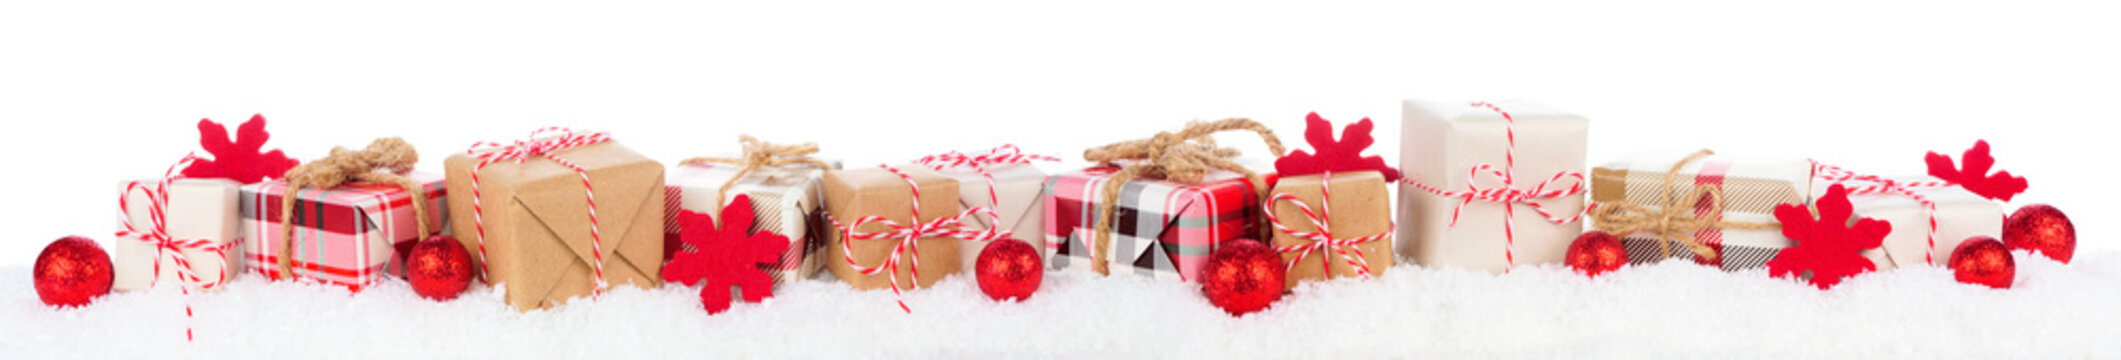 Christmas border of rustic red, white, brown and plaid gift boxes in snow. Side view isolated on a white background.